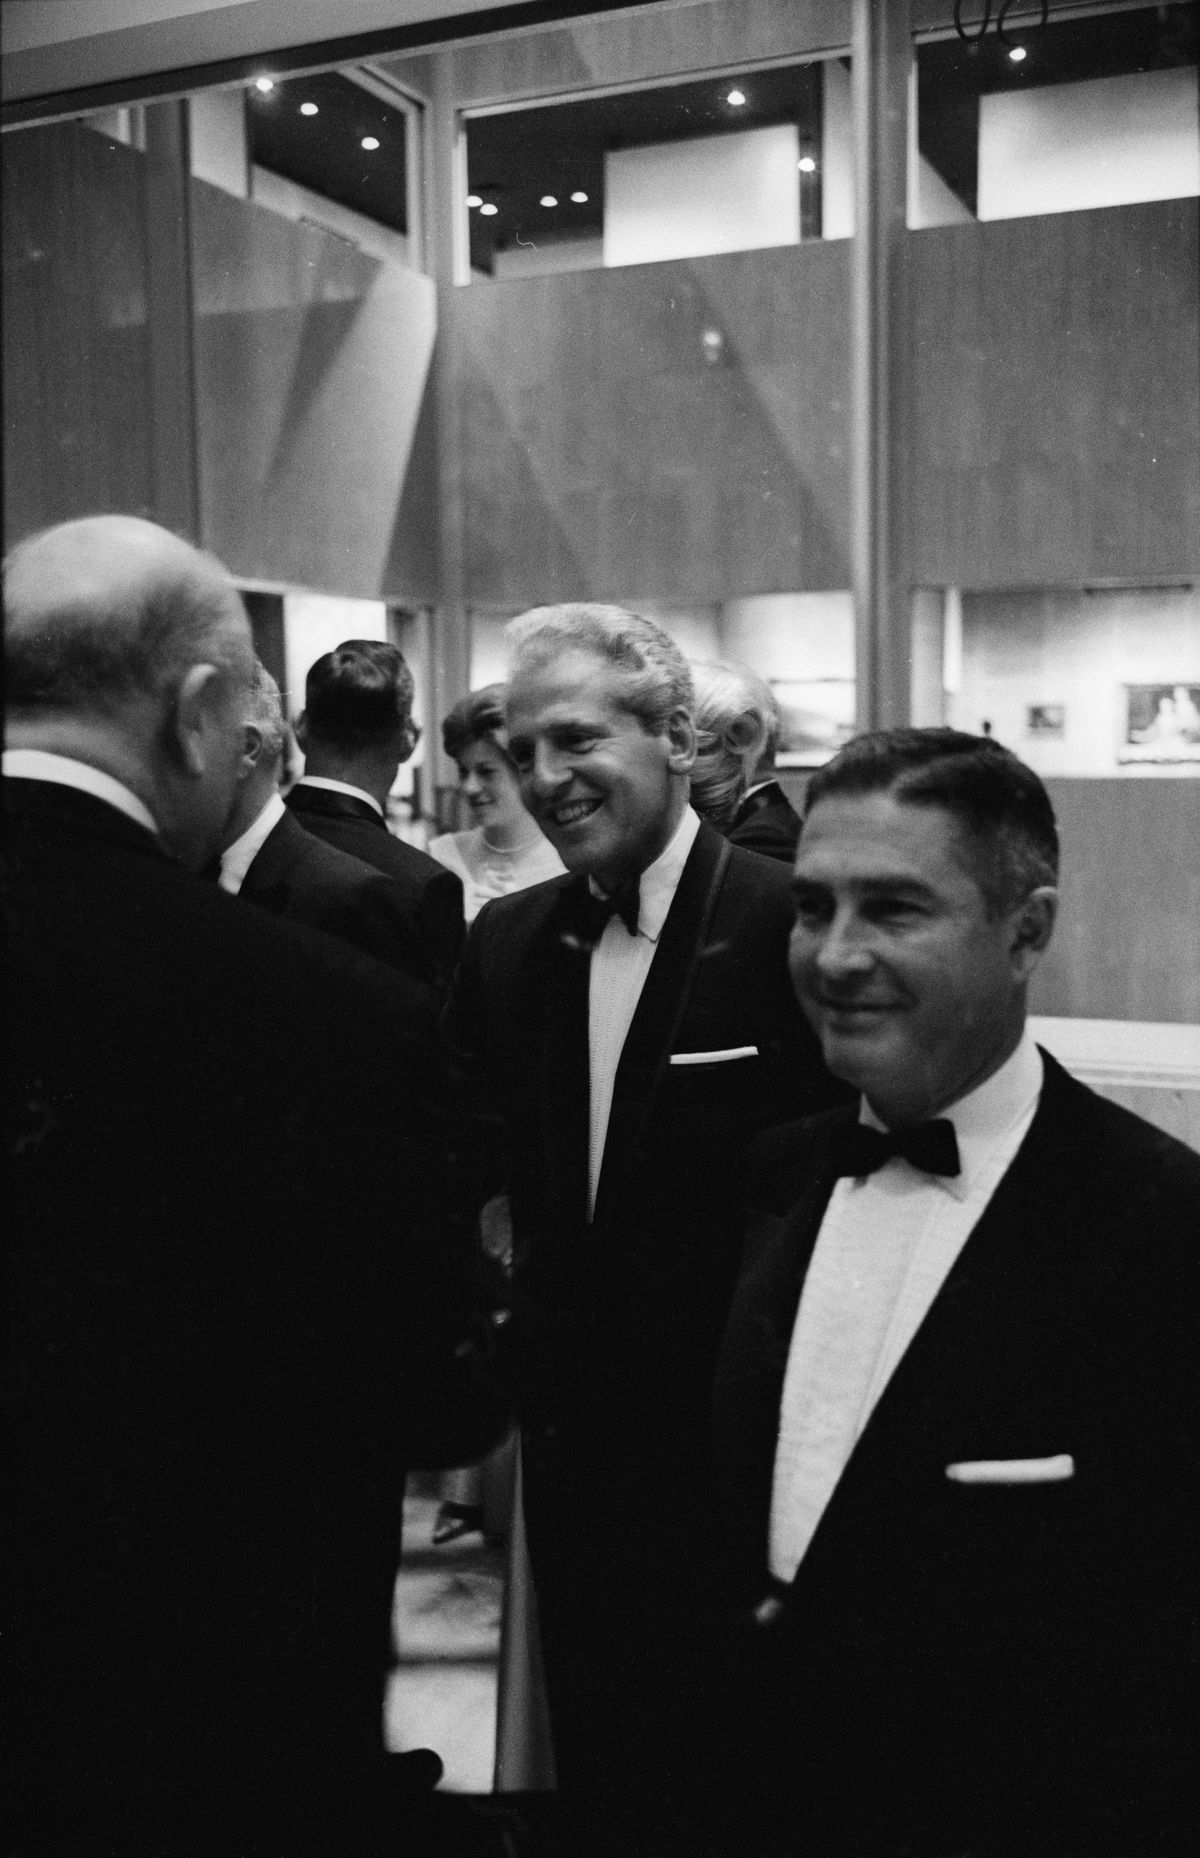 A black and white image of smiling white men in tuxedos.